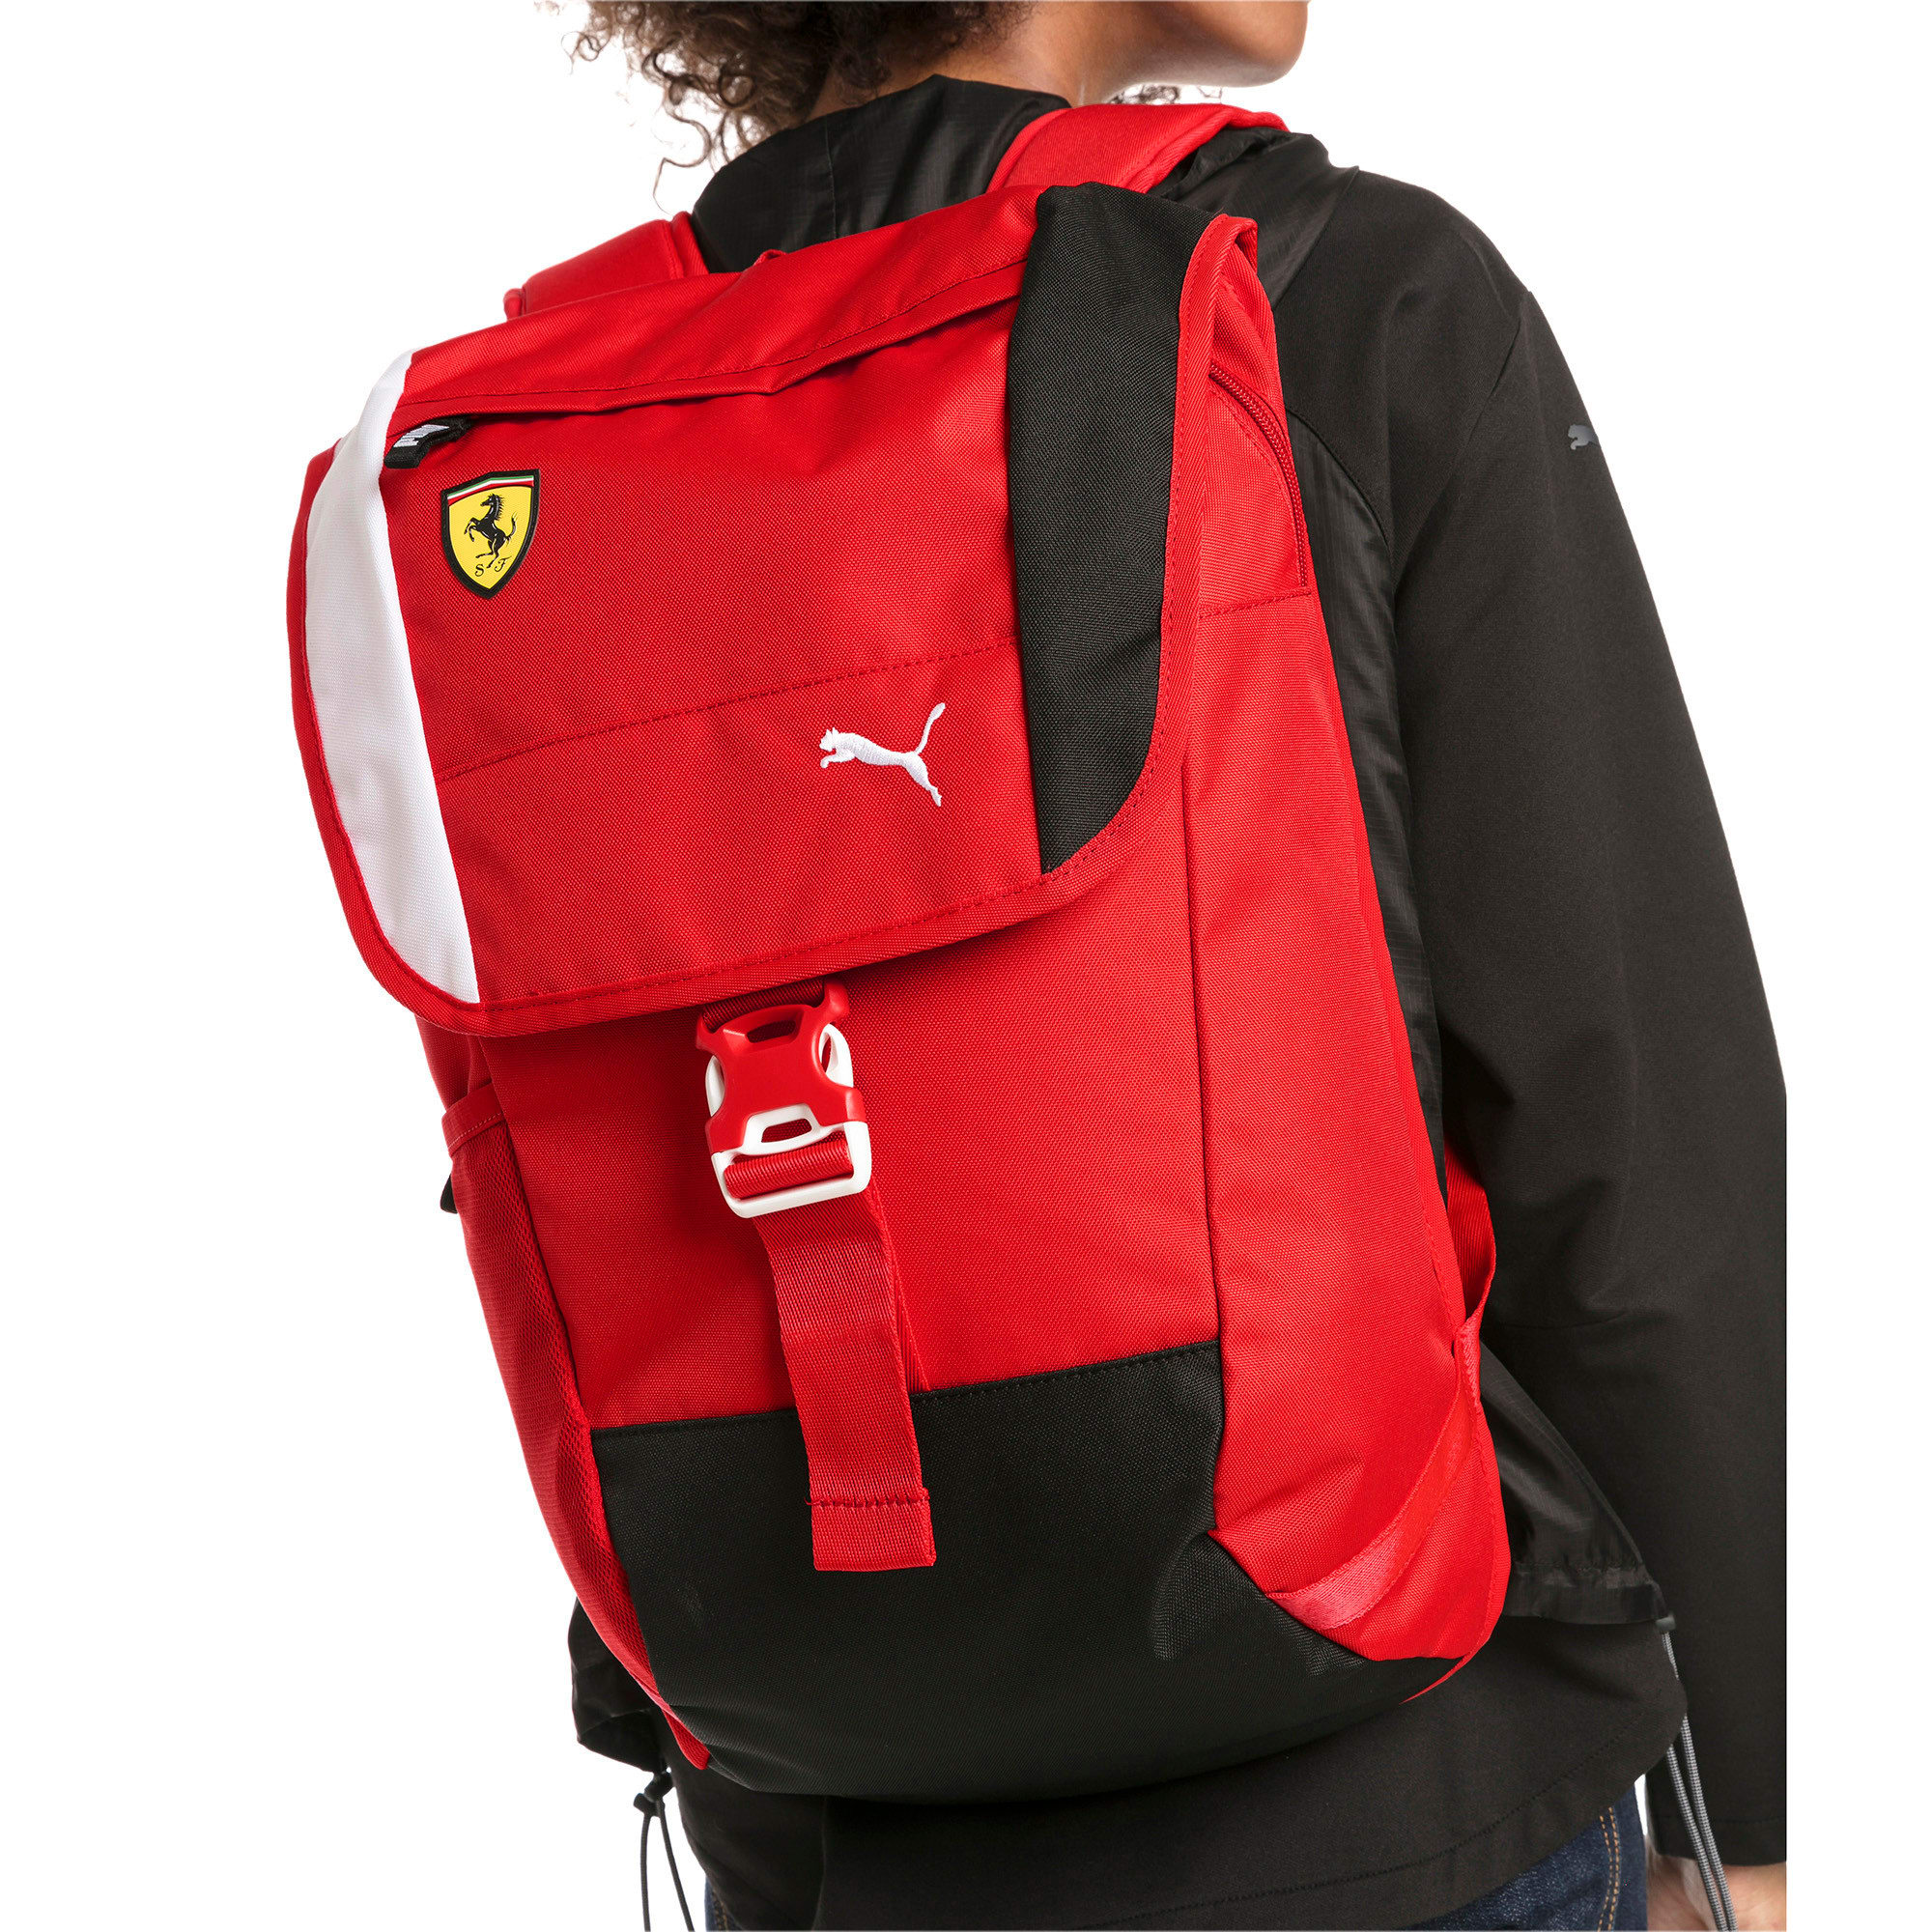 Thumbnail 3 of Ferrari Fanwear Backpack, Rosso Corsa, medium